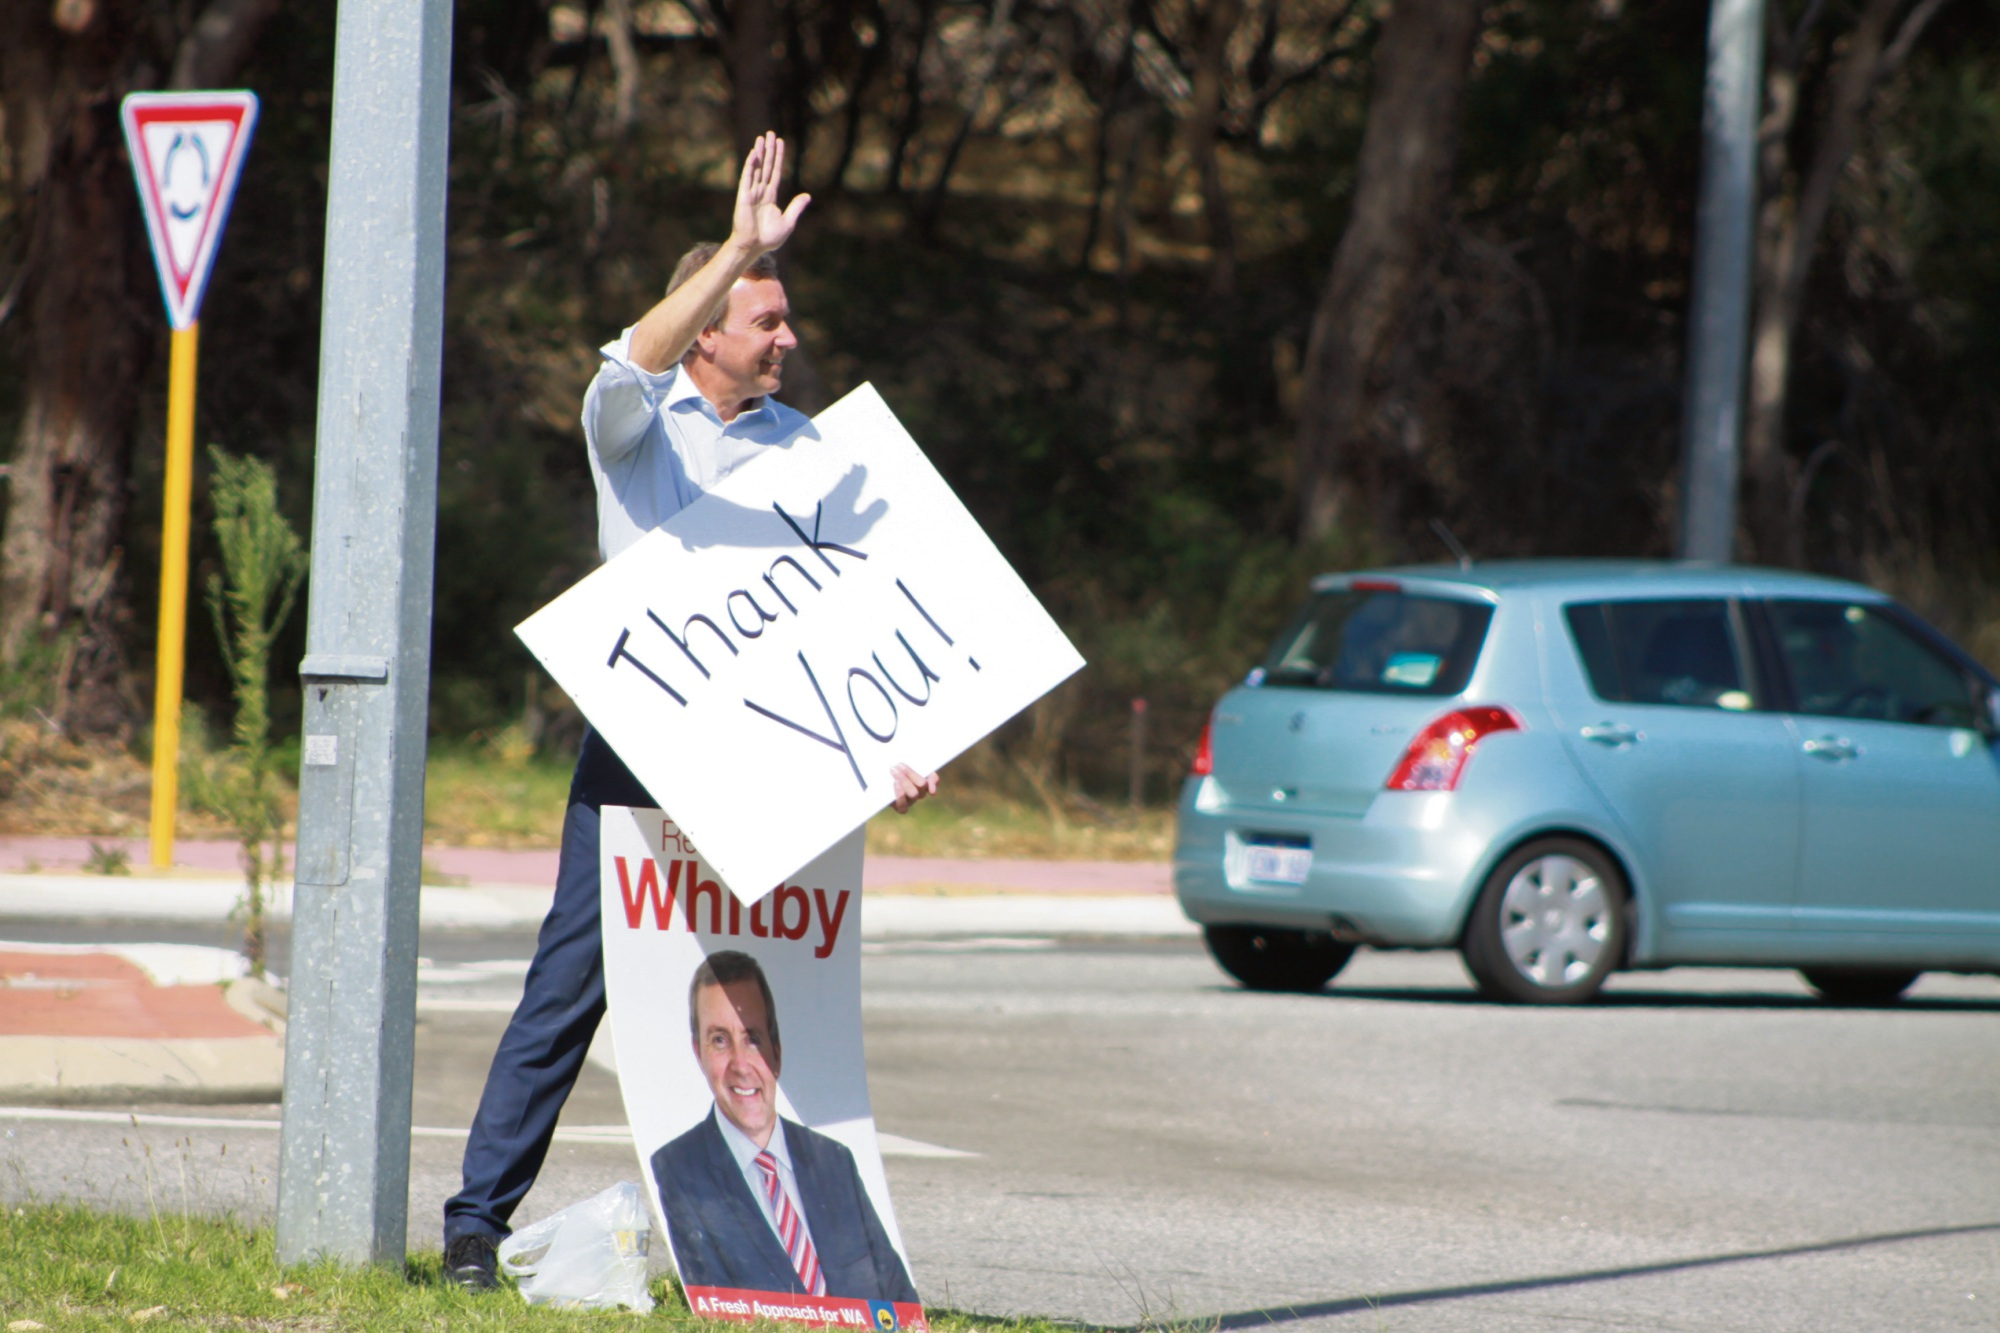 Baldivis MLA Reece Whitby thanks motorists for their support on Wednesday. |Picture: Gabrielle Jeffery